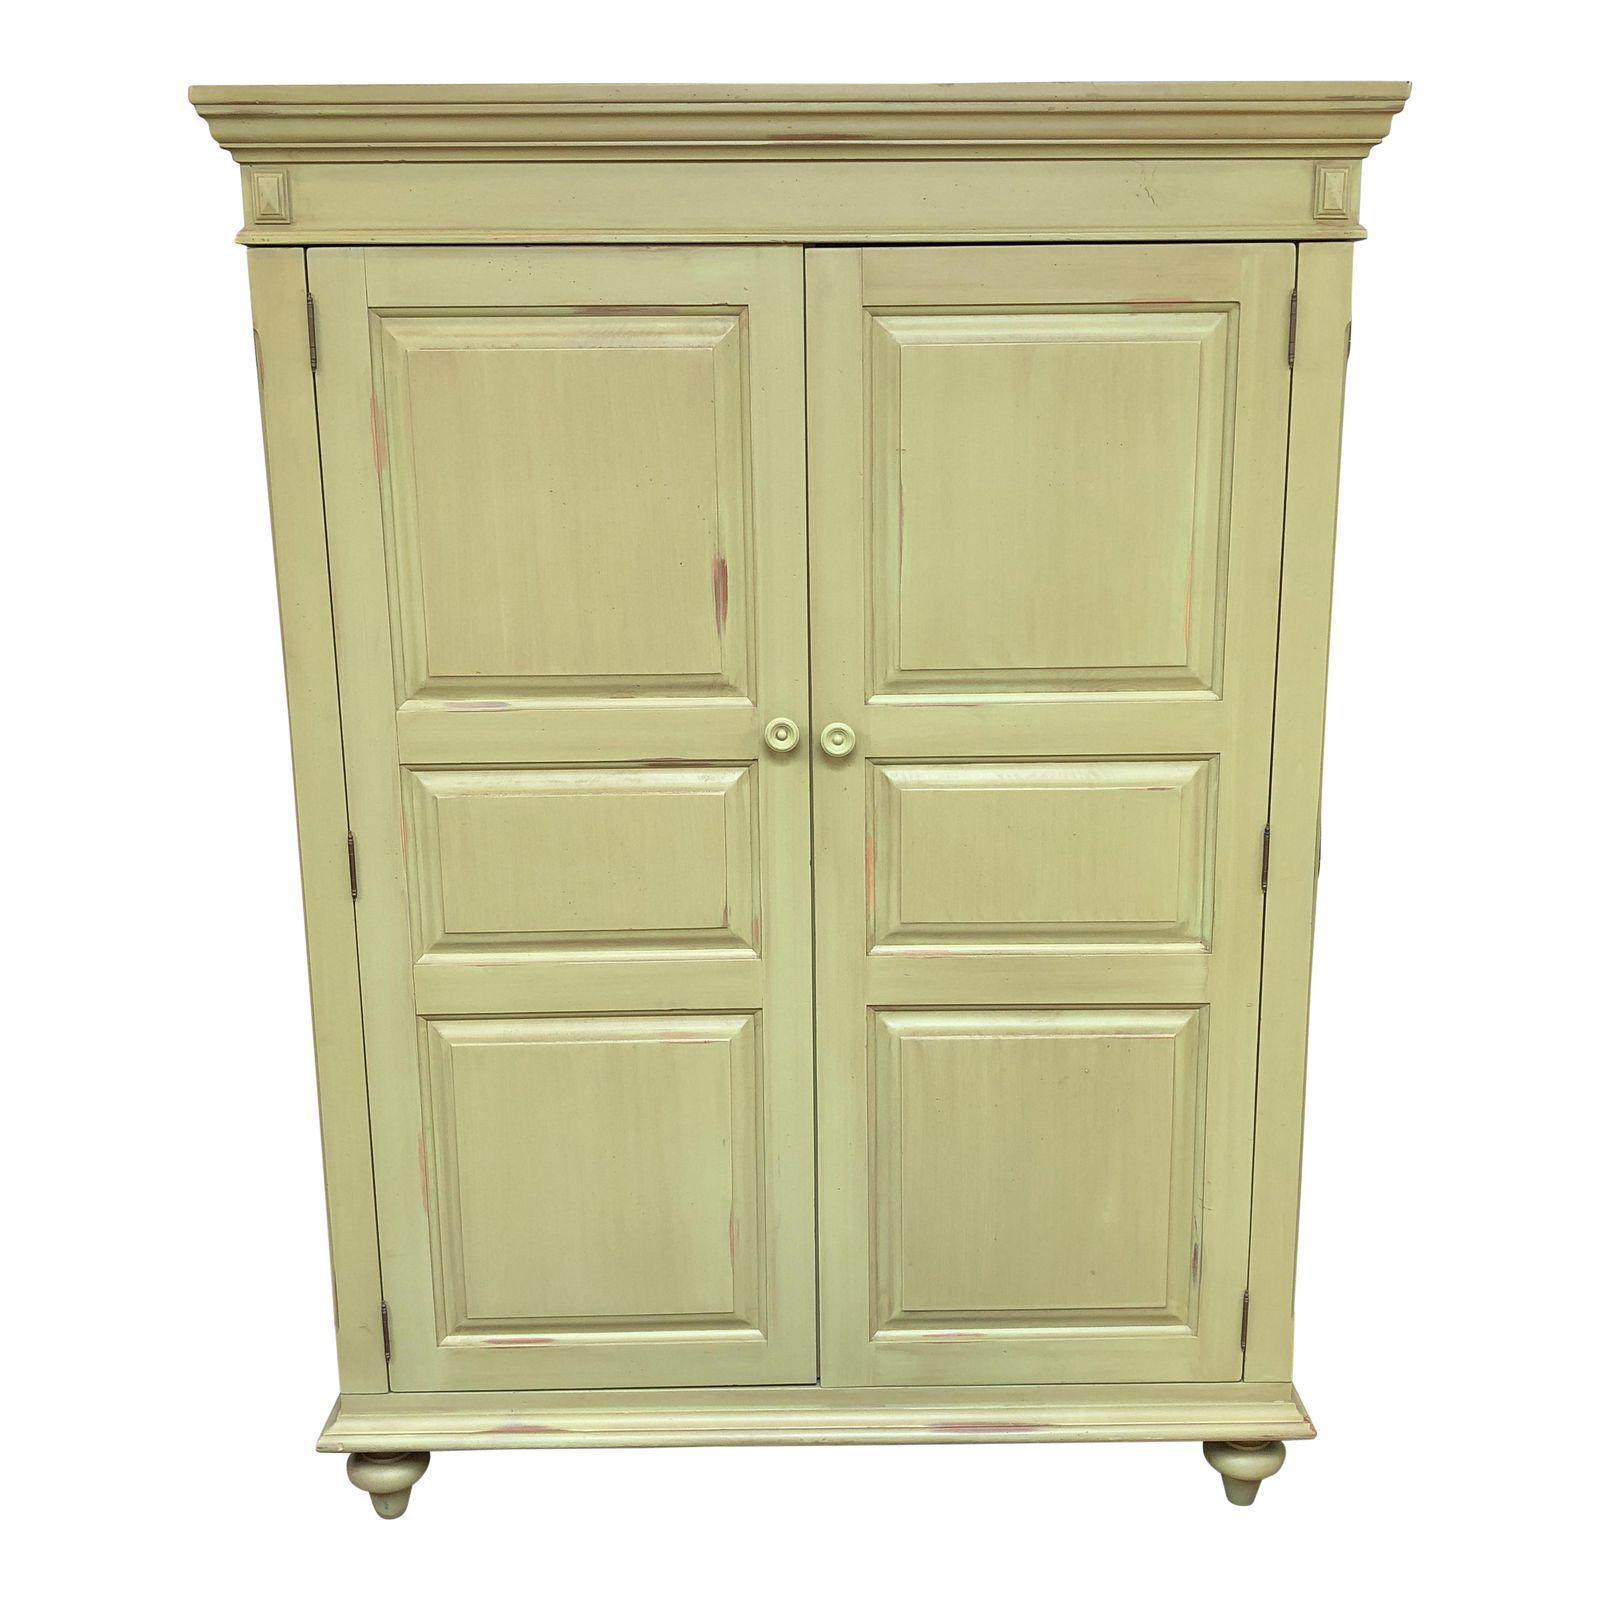 distressed green painted wood computer armoire design. Black Bedroom Furniture Sets. Home Design Ideas